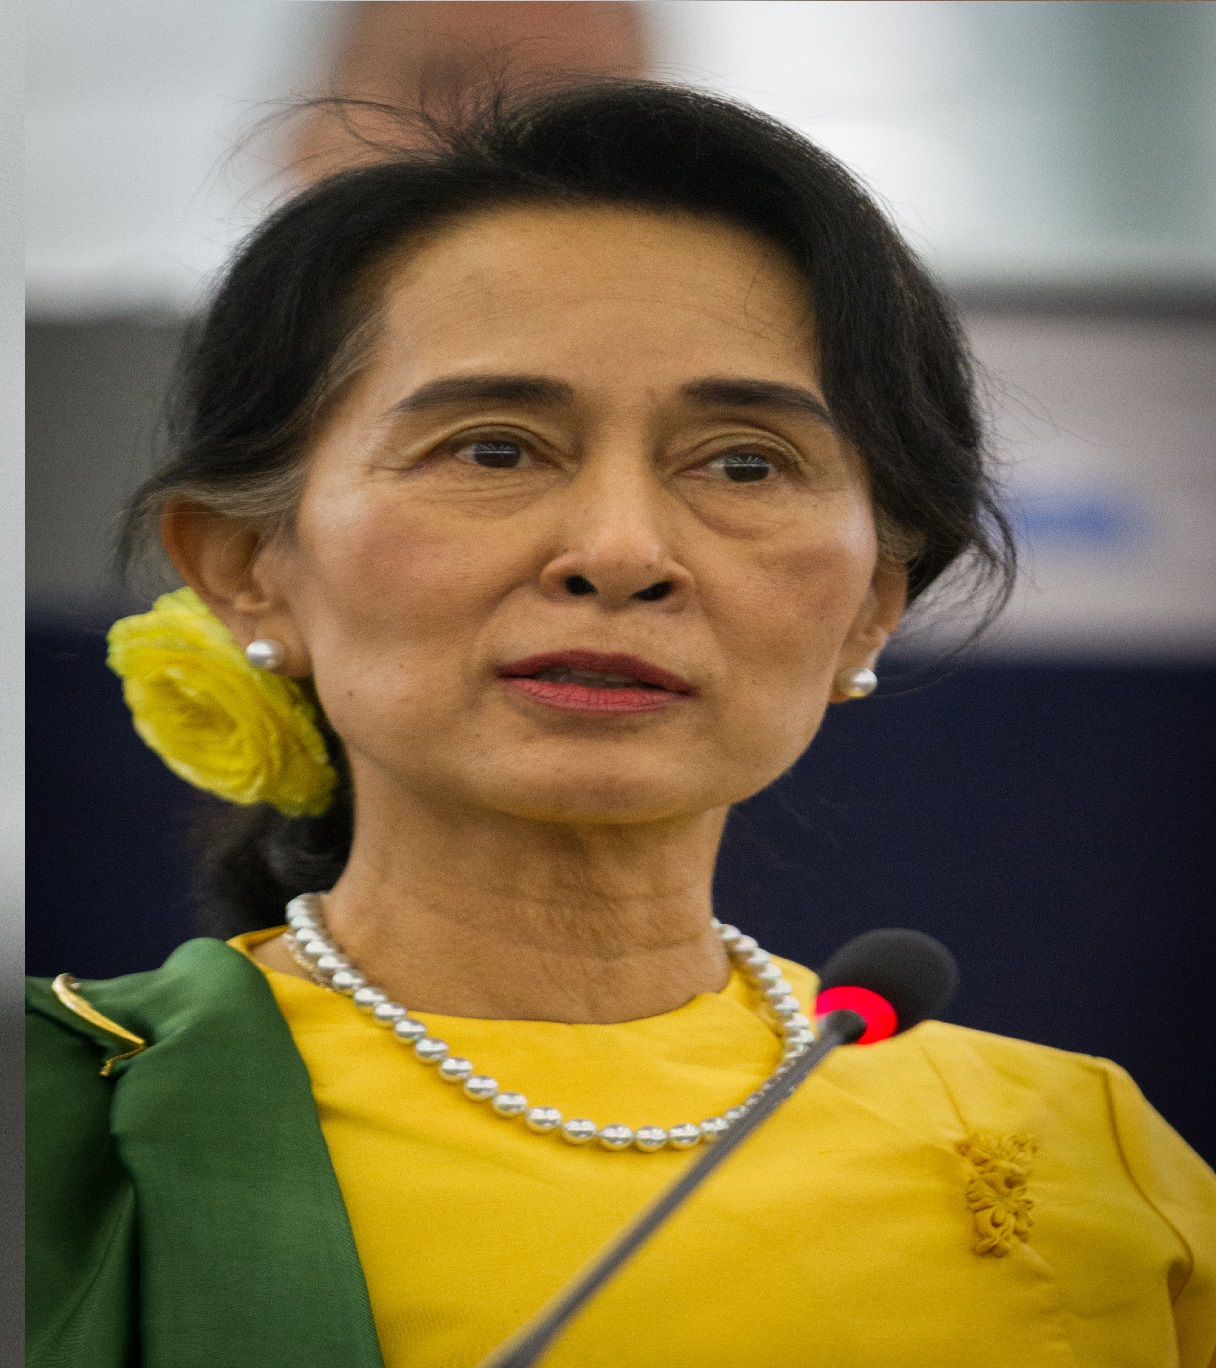 Suu Kyi confronted with sedition charge on 2nd day of trial